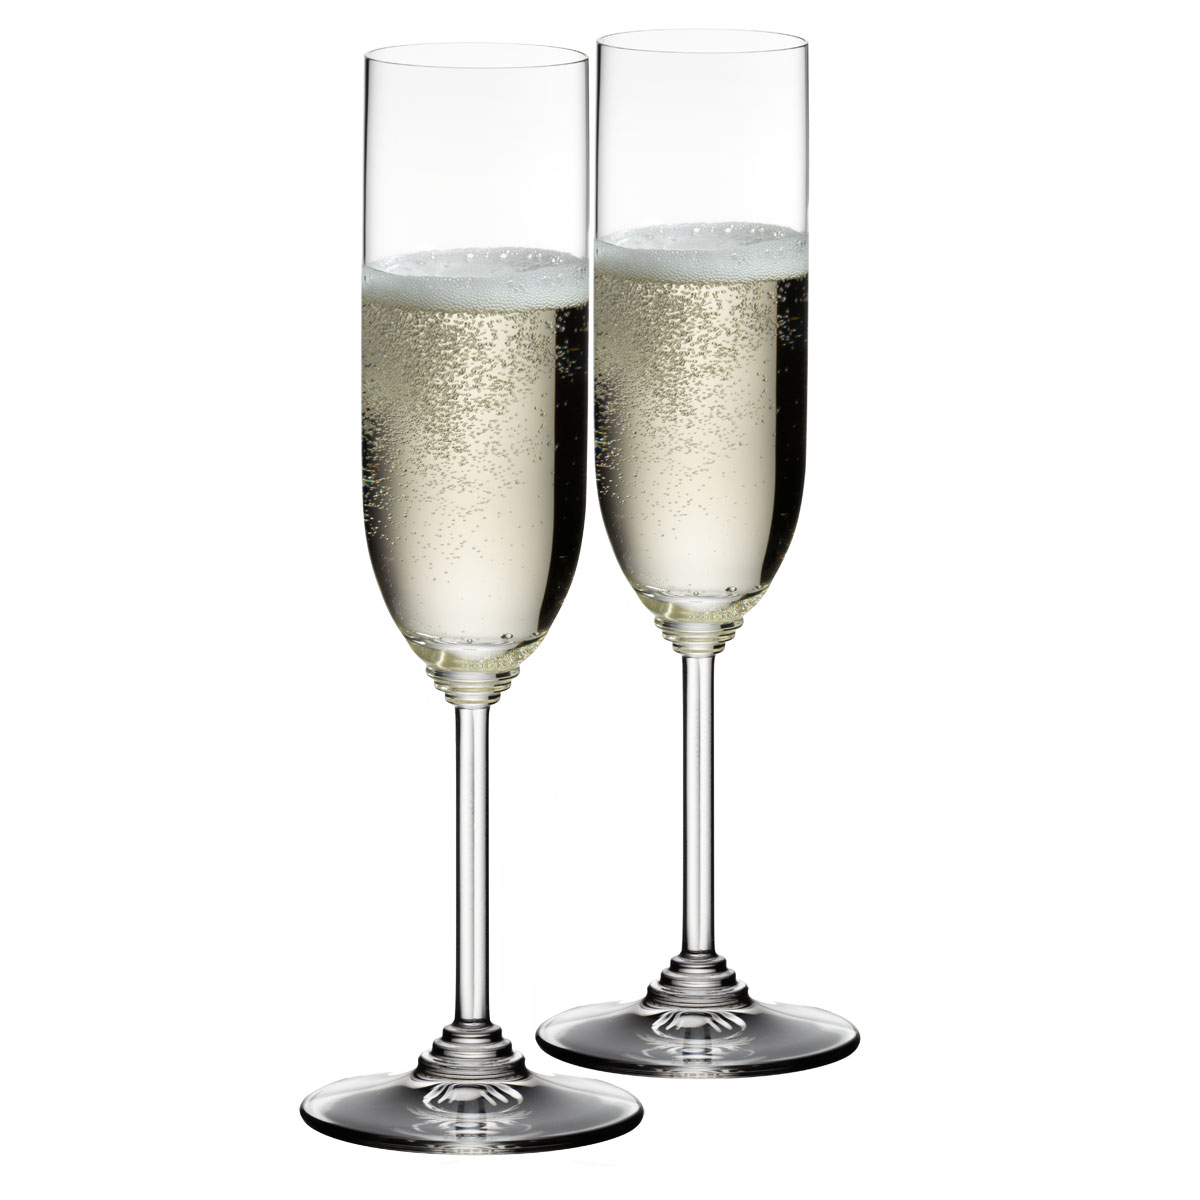 Riedel Wine, Champagne Glasses, Pair